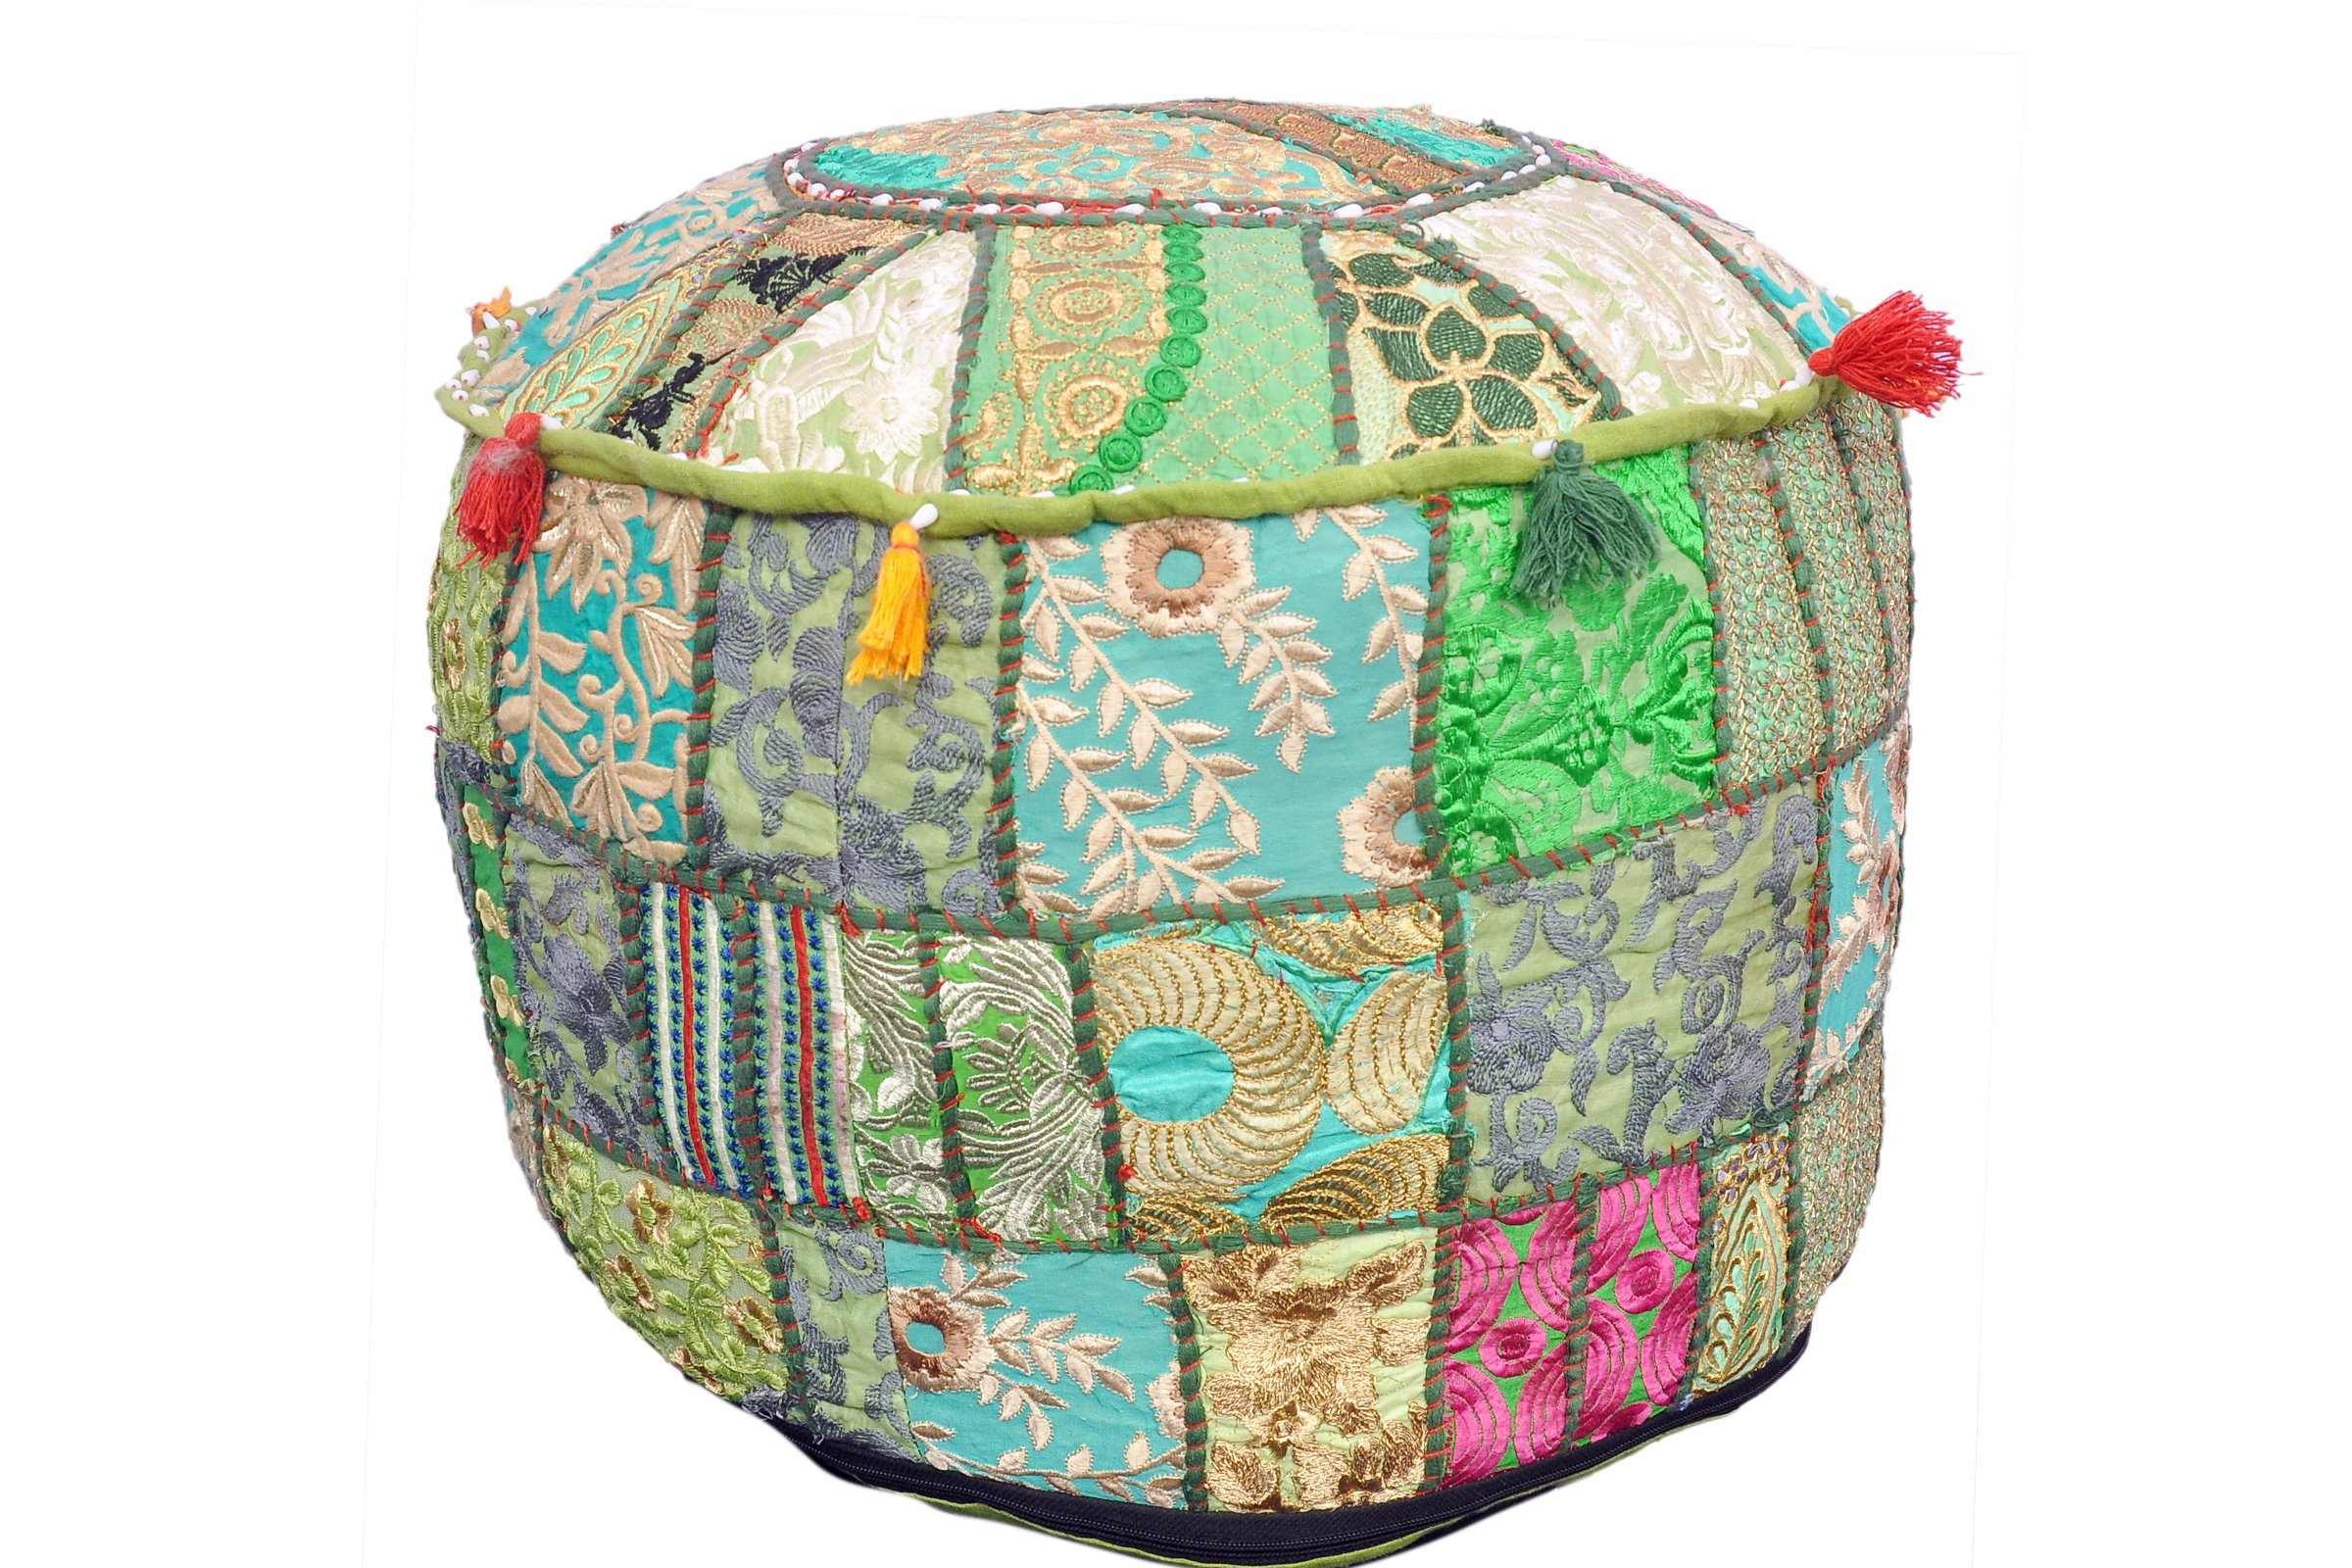 Beautiful Green Color Ruond Ottoman Indian Patchwork Pouffe ,Indian Traditional Home Decorative Handmade Cotton Ottoman Patchwork Foot Stool- Floor Cushion Decor ,Embroidered Chair Cover by Marudhara Fashion